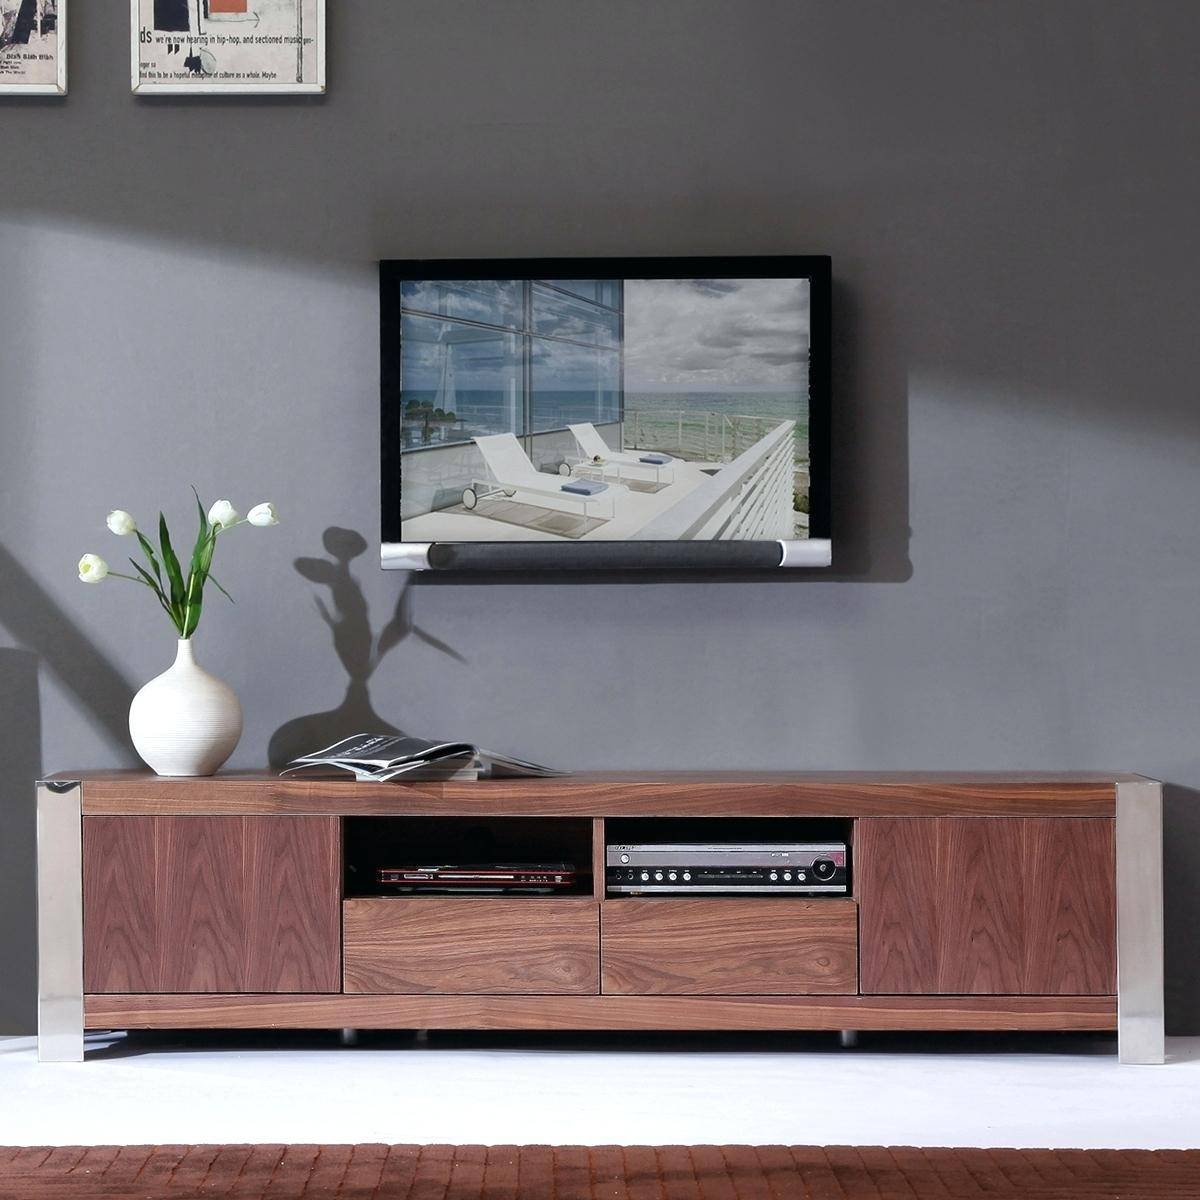 Tv Stand: Terrific Contemporary Tv Stand For Home Furniture for Contemporary Tv Stands For Flat Screens (Image 13 of 15)